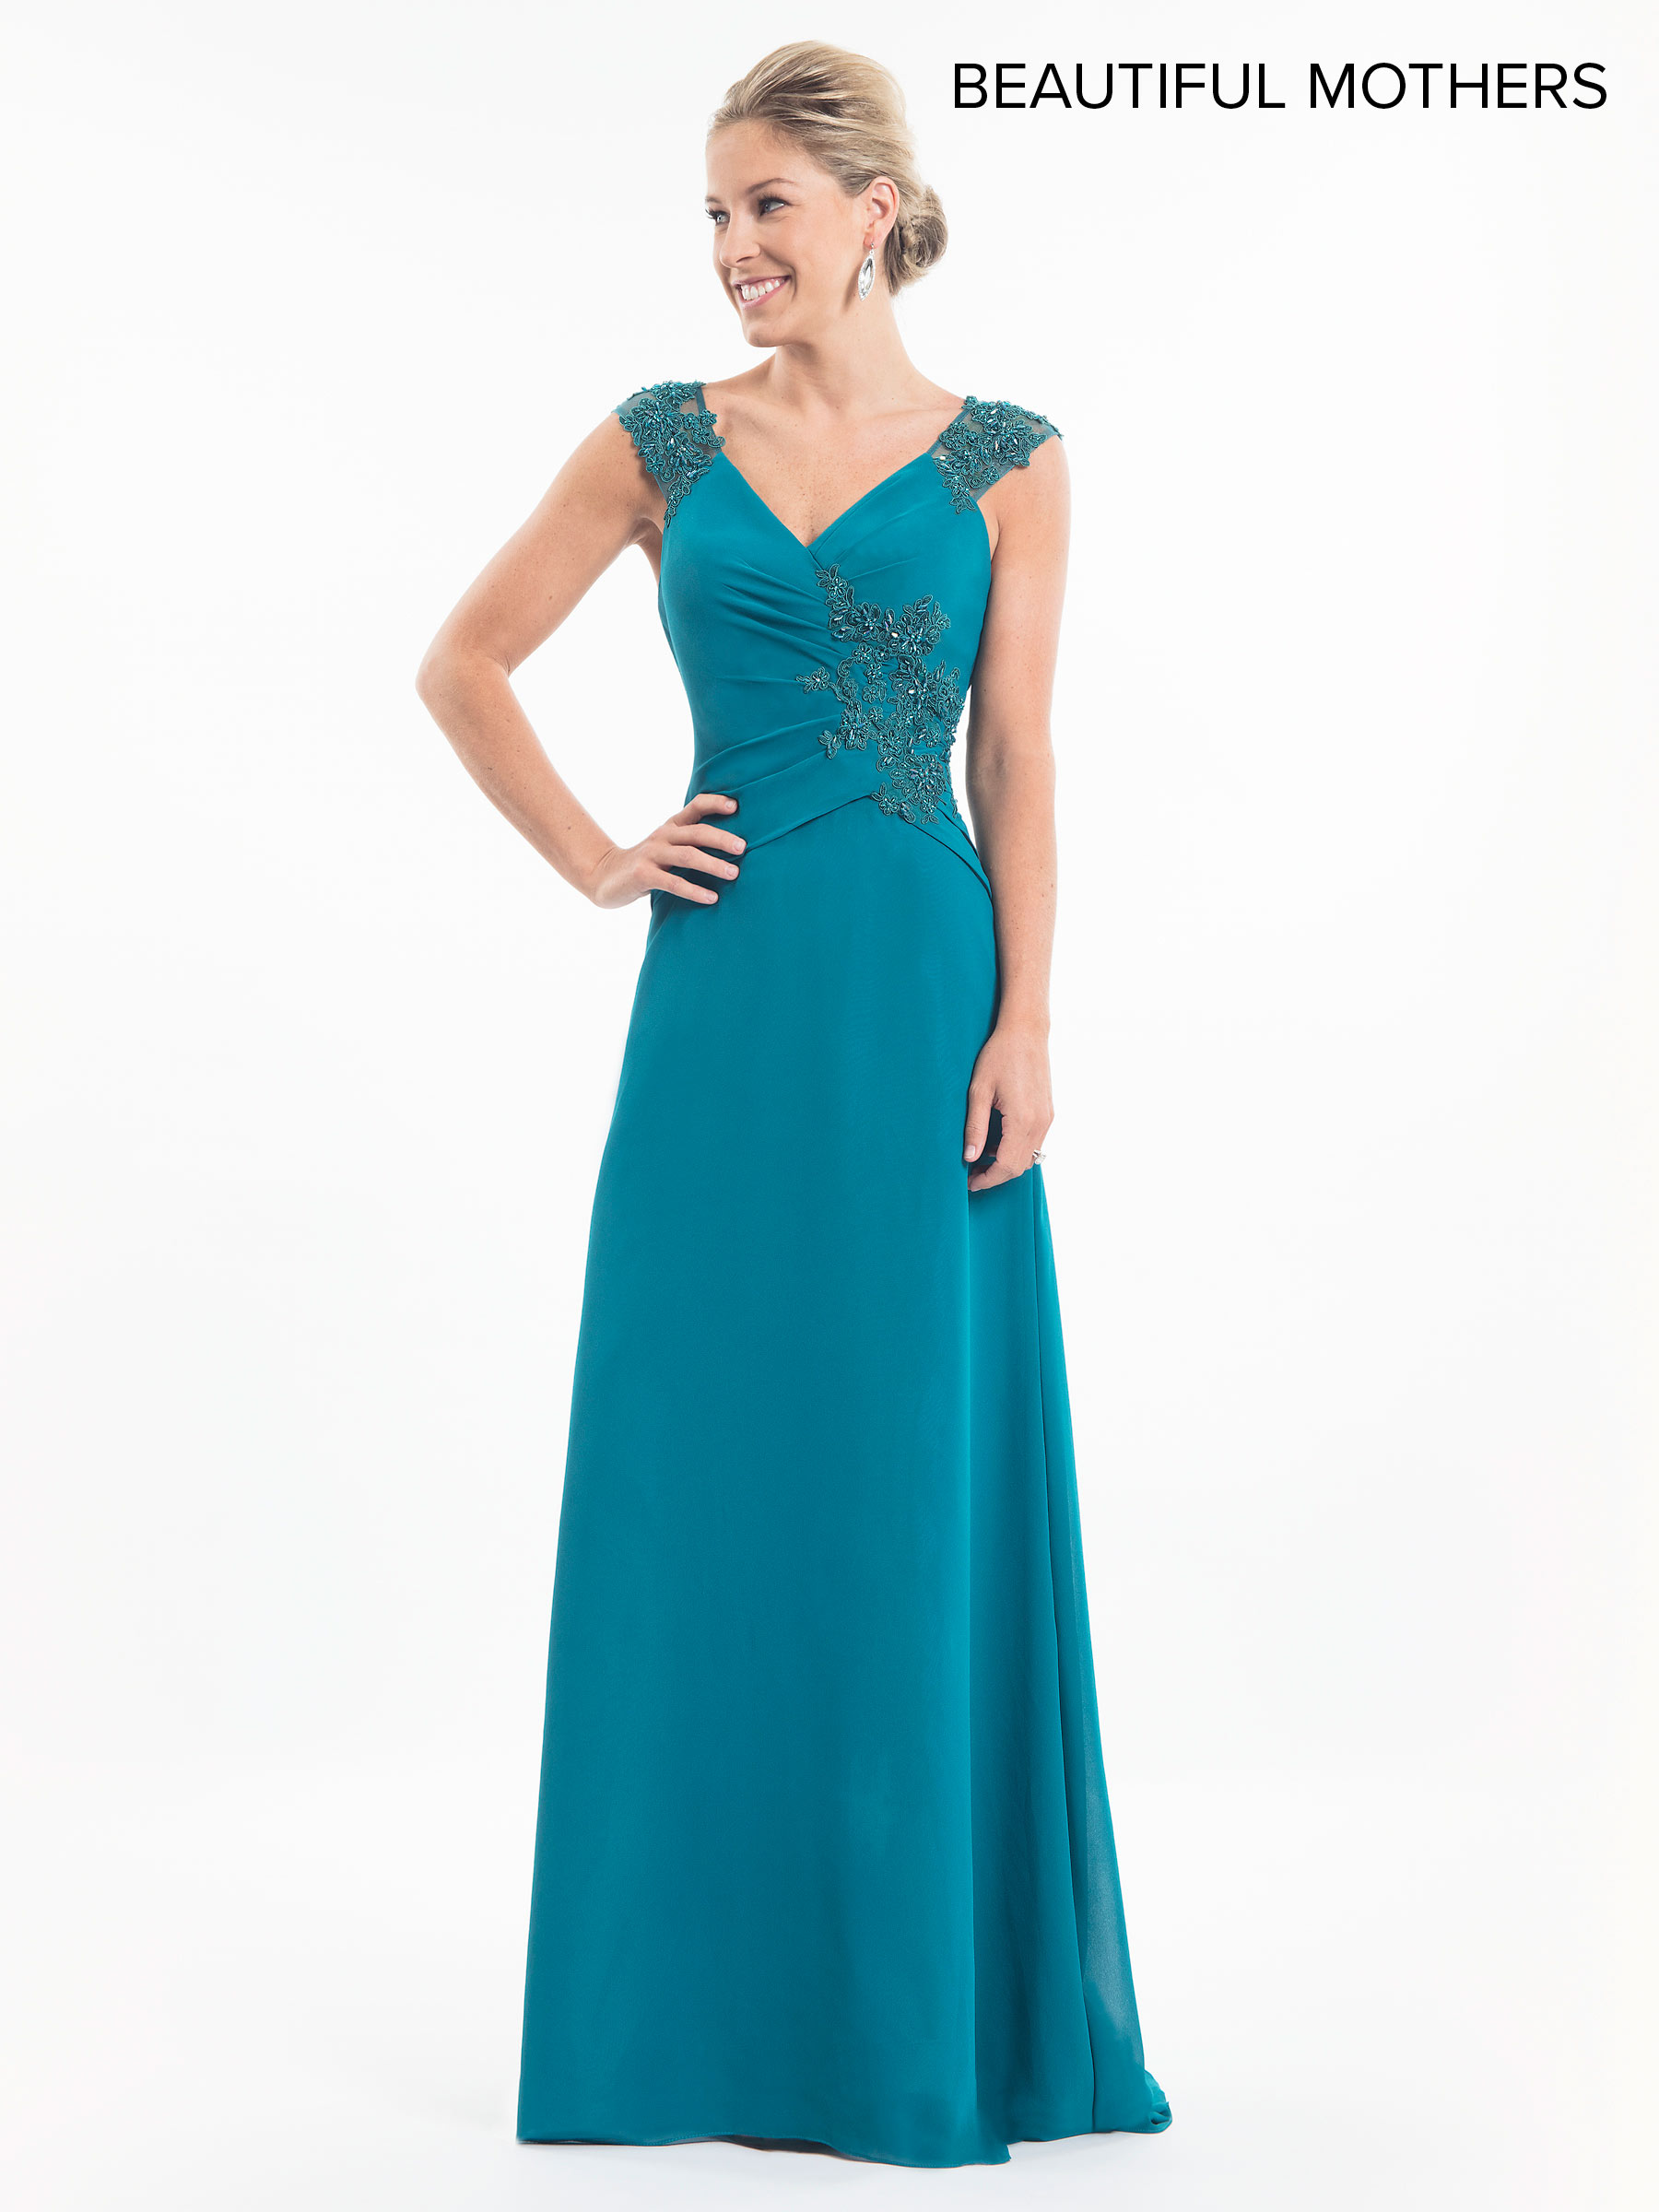 Mother Of The Bride Dresses | Style - MB8018 in Teal , Aubergine, or ...